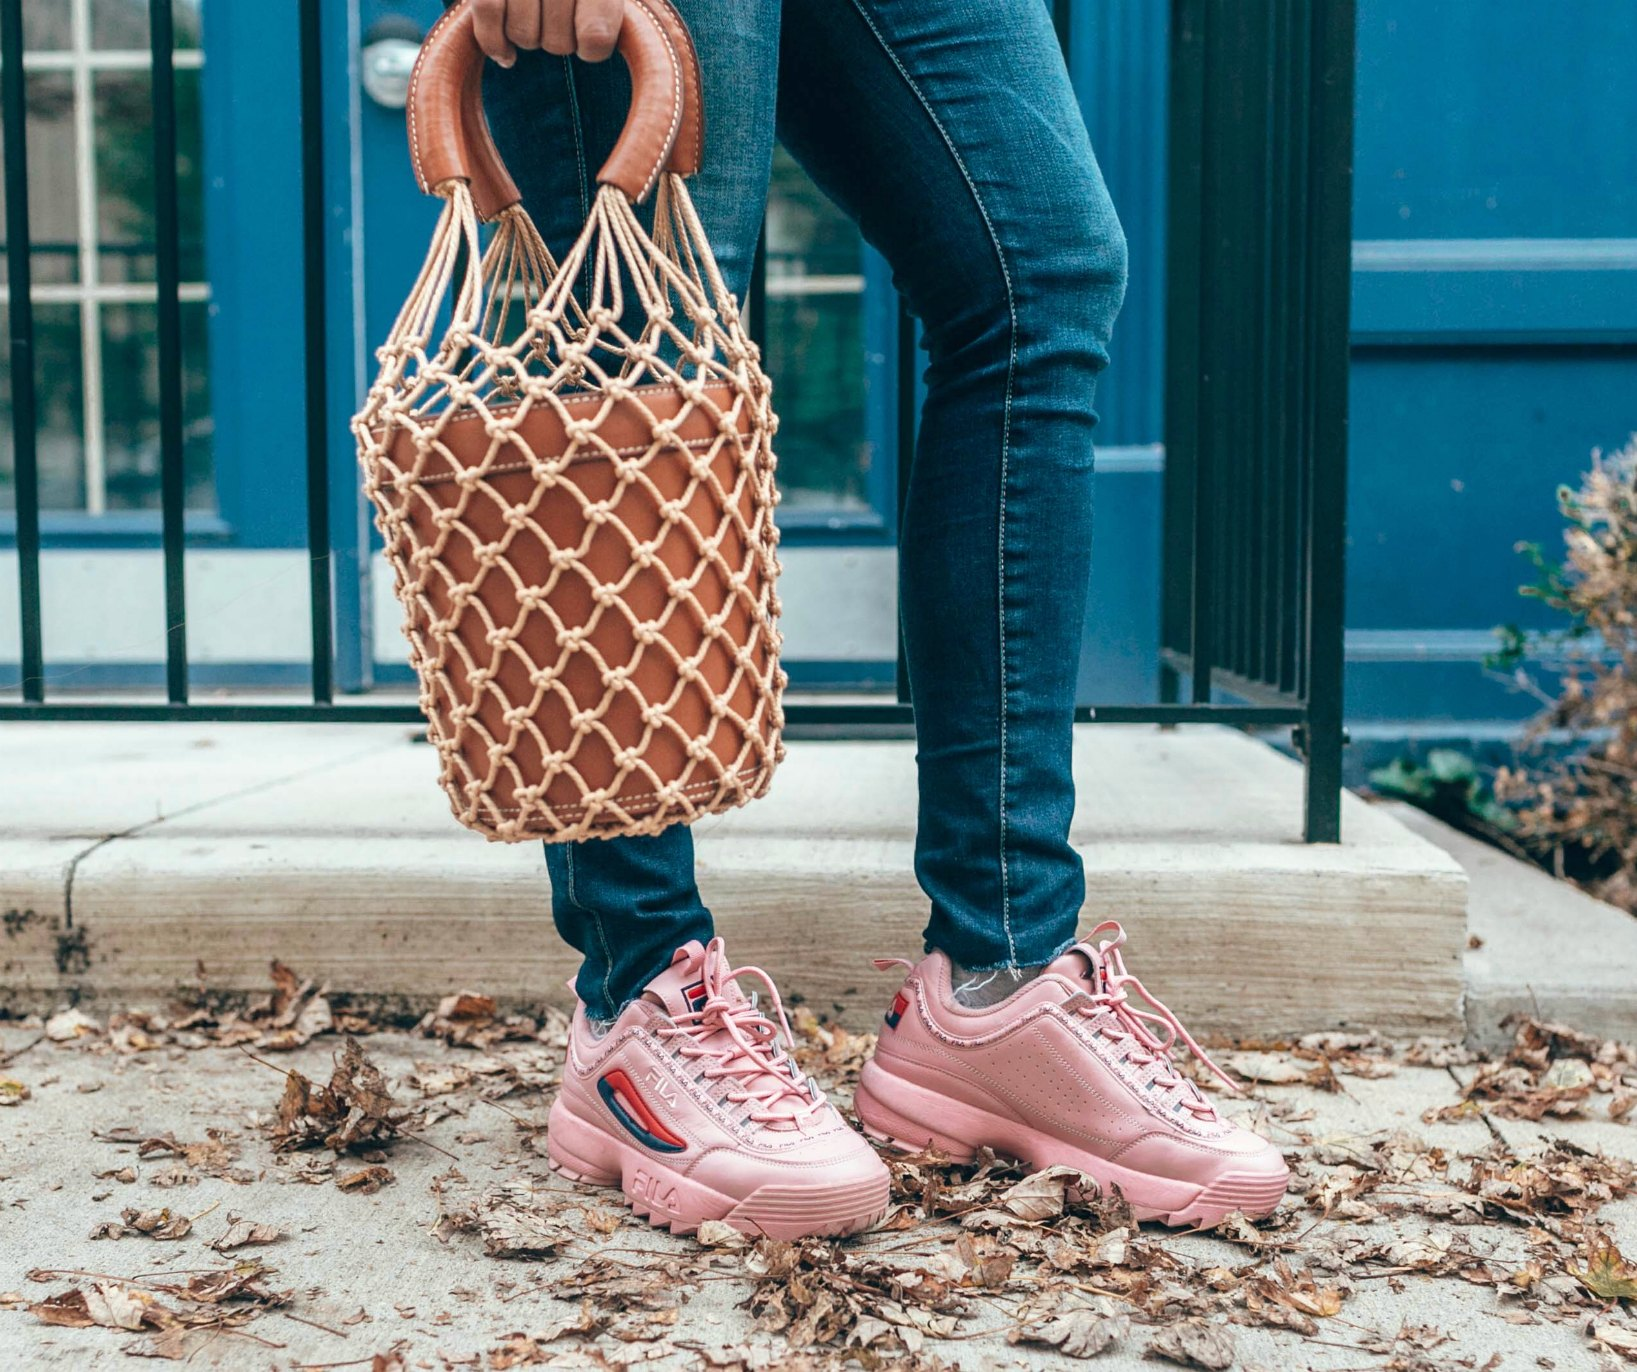 wearing Fila Disruptor II Premium Sneaker in pink| 5 Chic Ways to Wear the New Chunky Sneaker Trend: ugly sneakers & dad sneakers, featured by popular US fashion blogger, Dreaming Loud